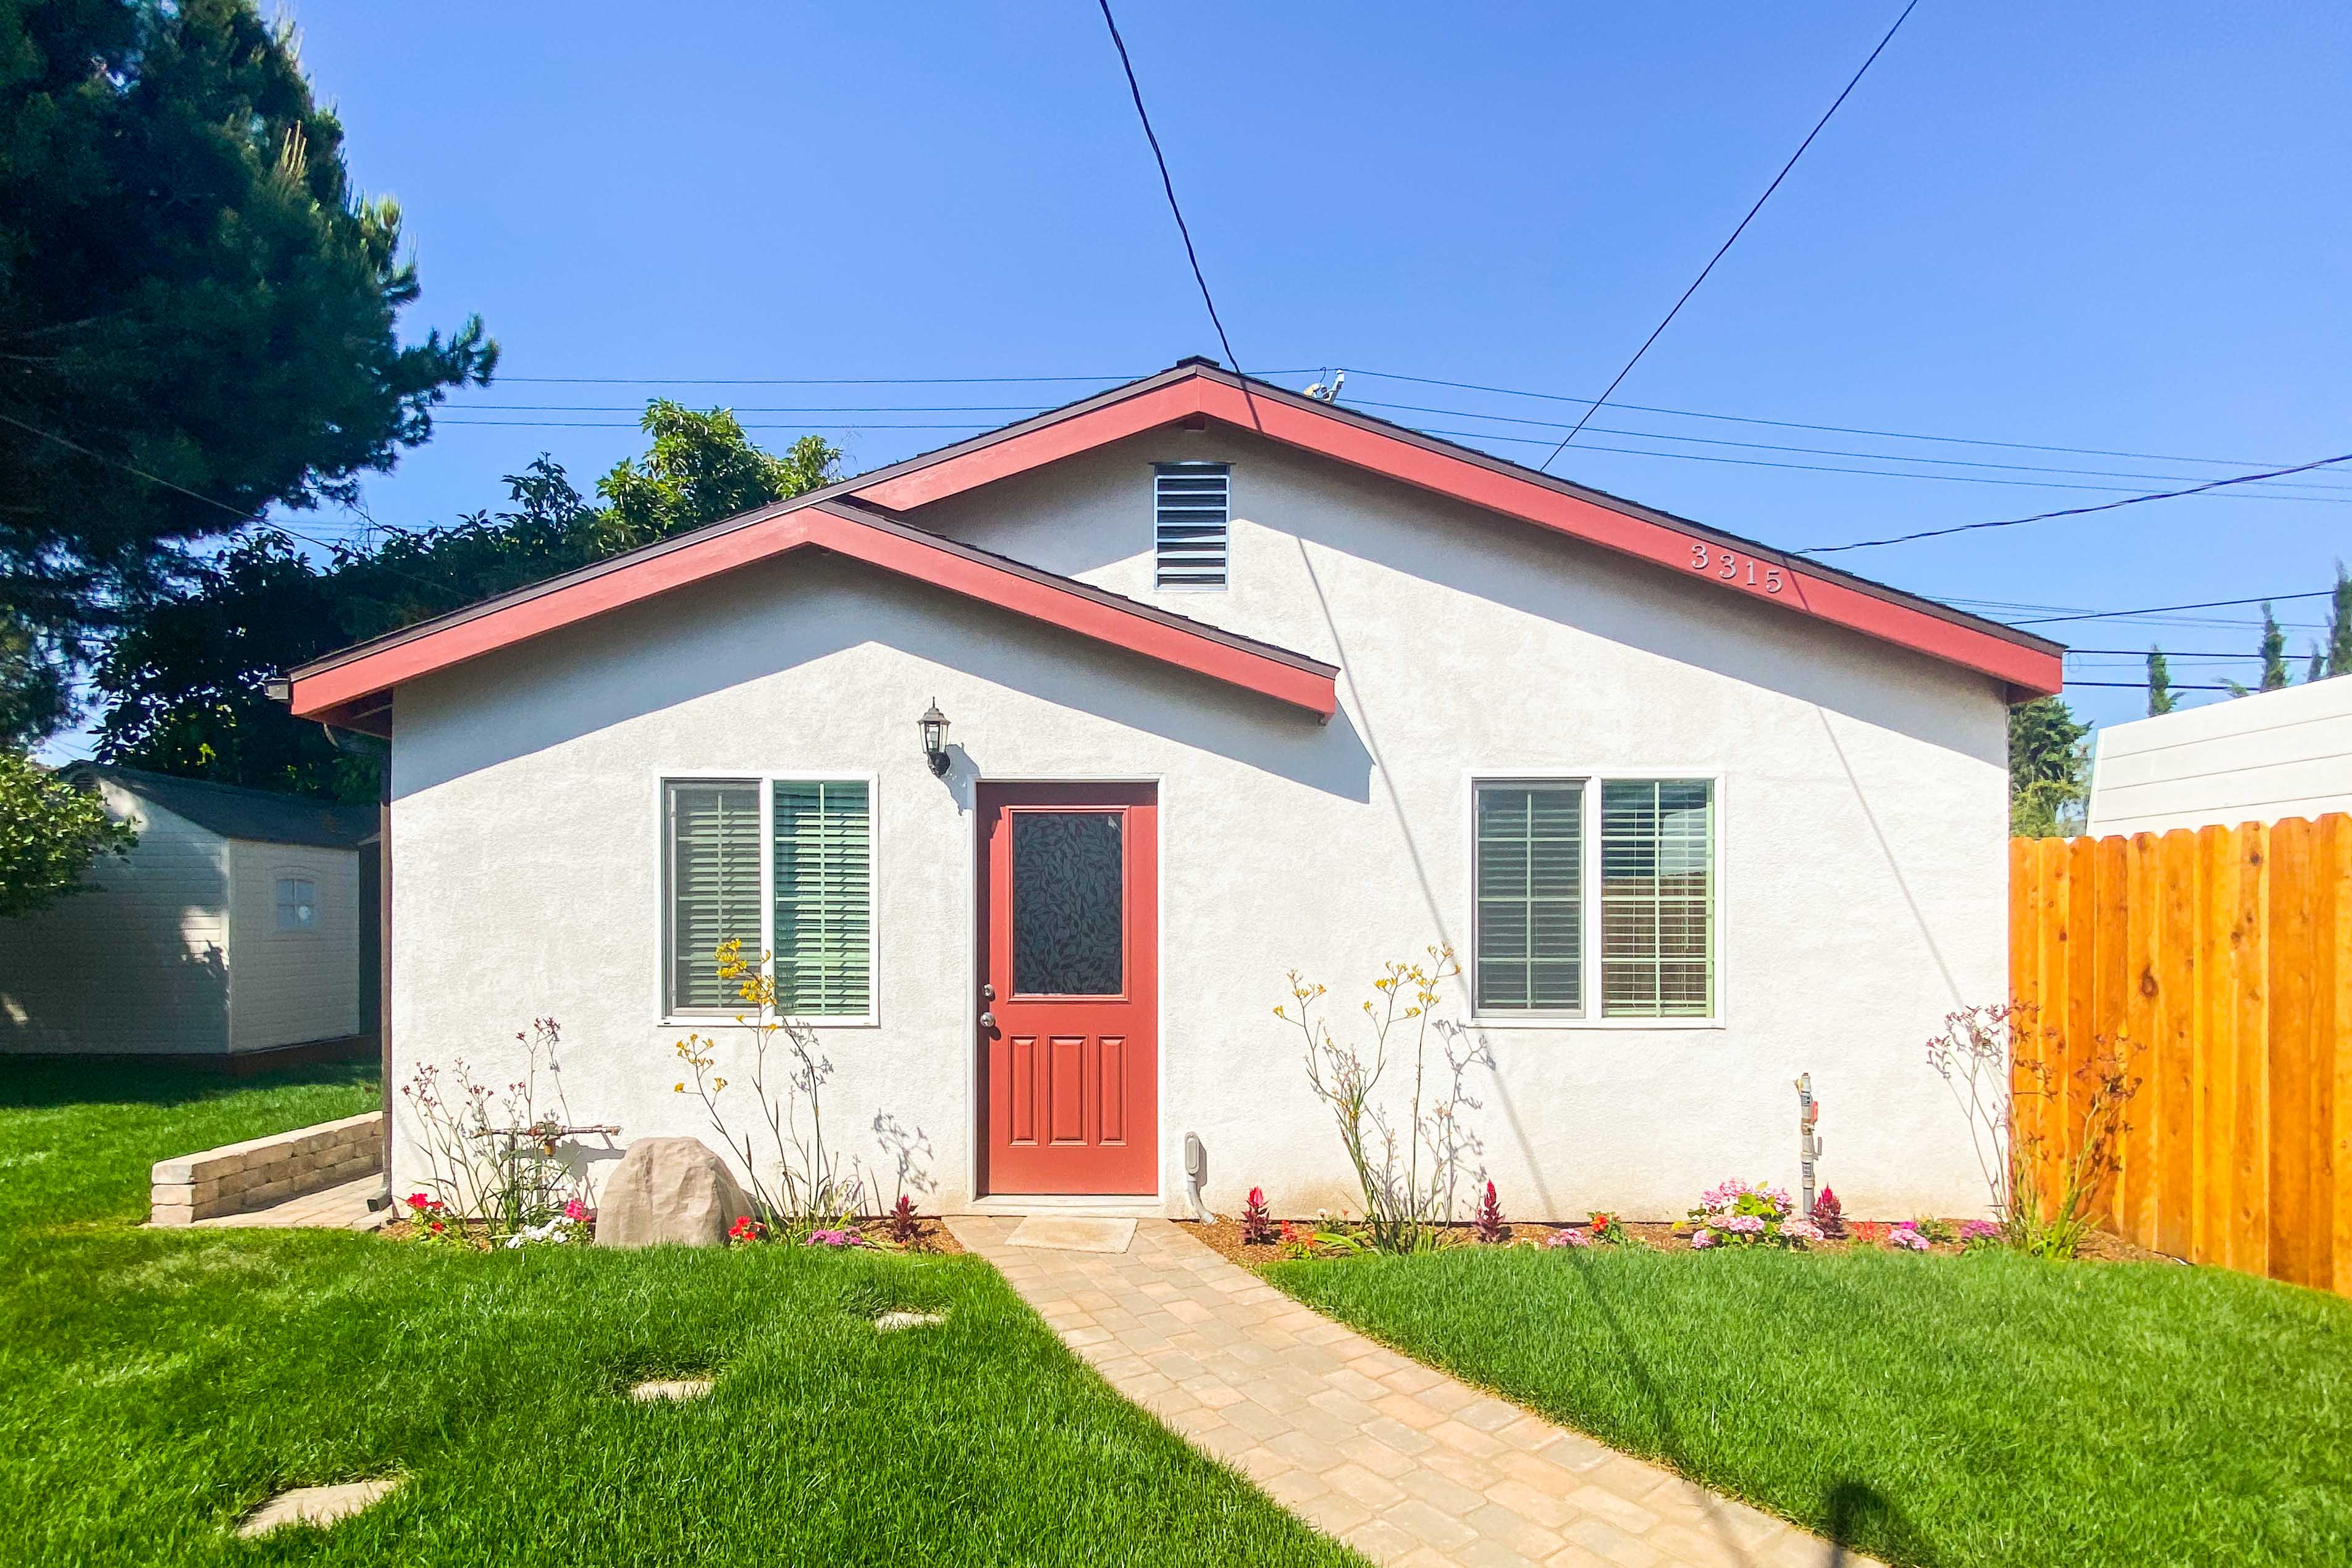 Brand New Build - 2 Bed/1 Bath   Prime Atwater Village Backhouse   Lush Yard Space W/ Fruit Trees!